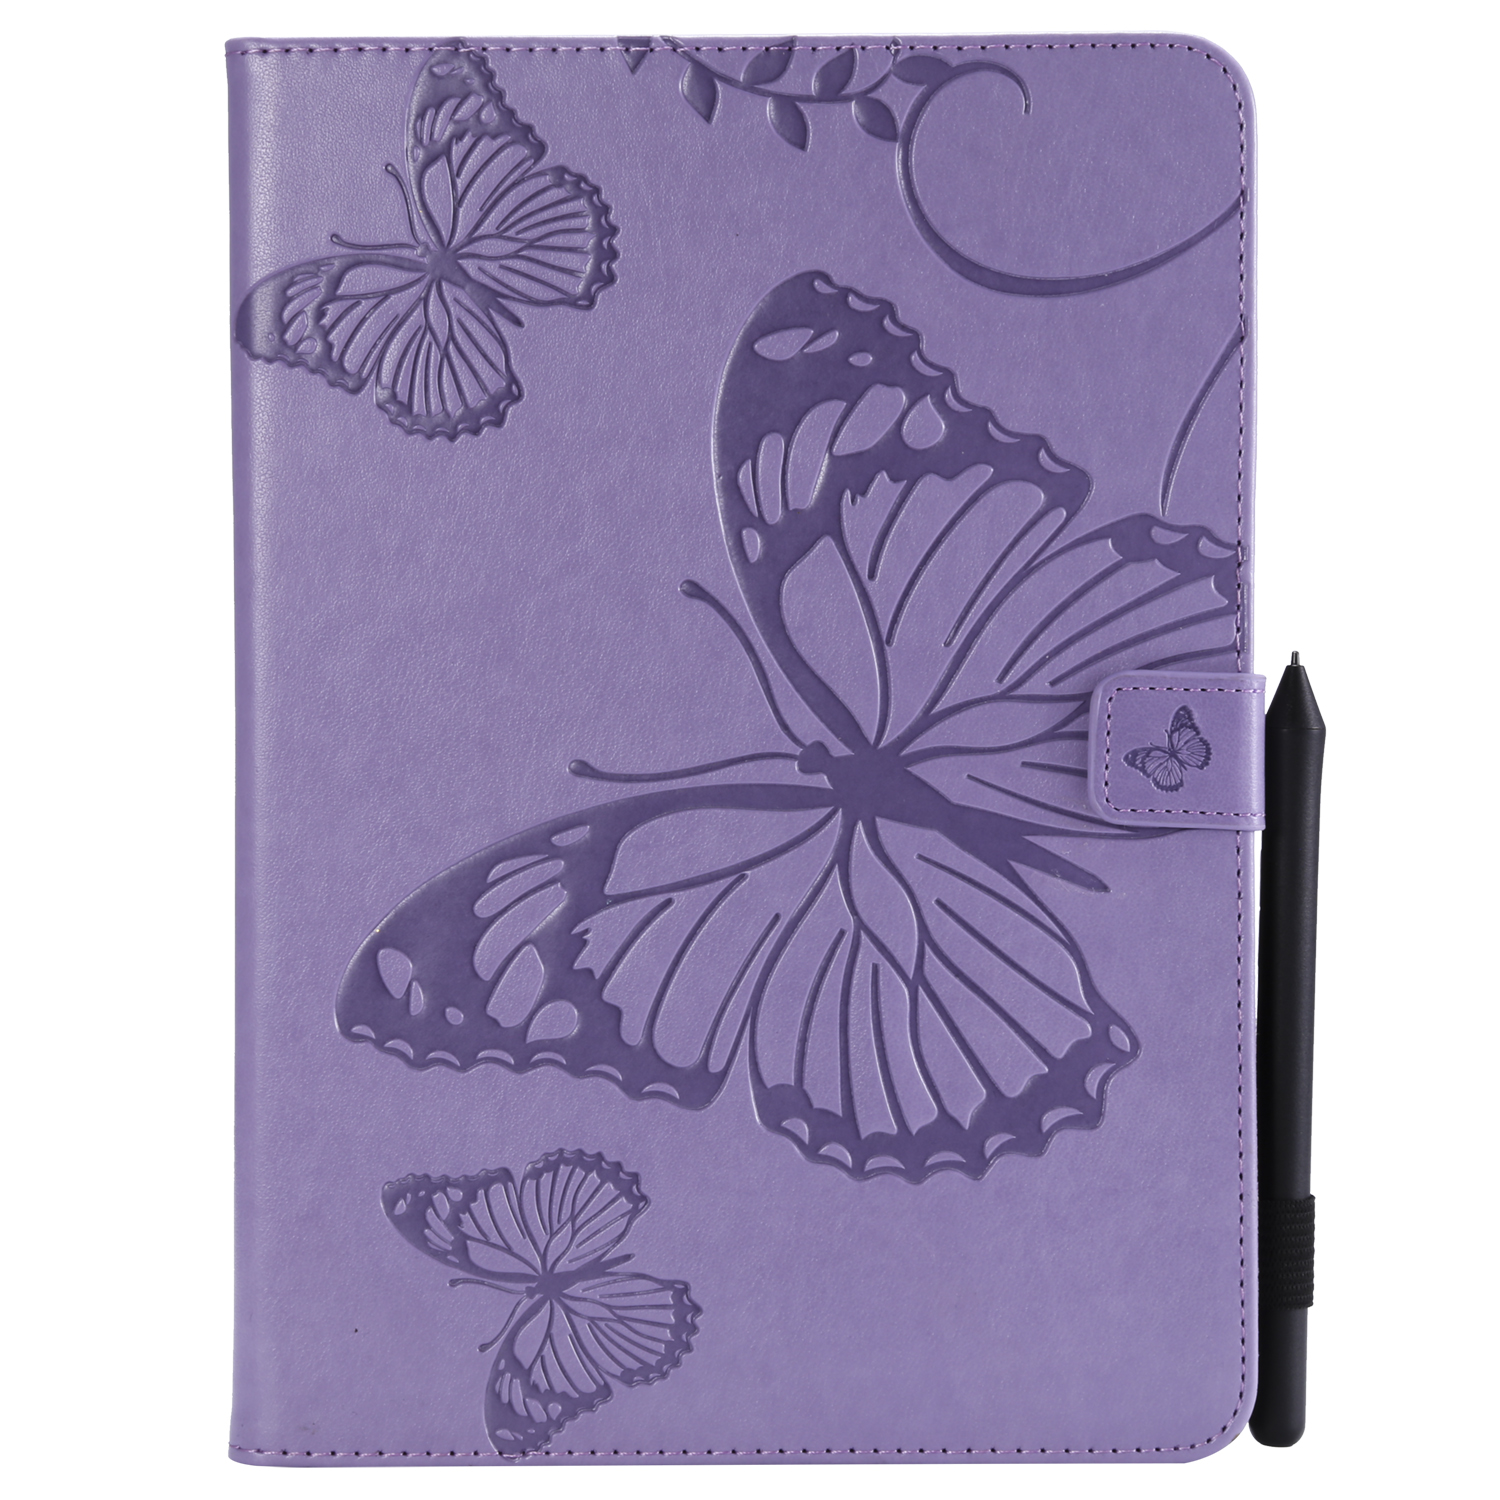 For iPad 5/6/air1/air2 9.7 Fashion Butterfly Embossed PU Leather Magnetic Closure Stand Case Auto Wake/Sleep Cover with Pen Slot purple